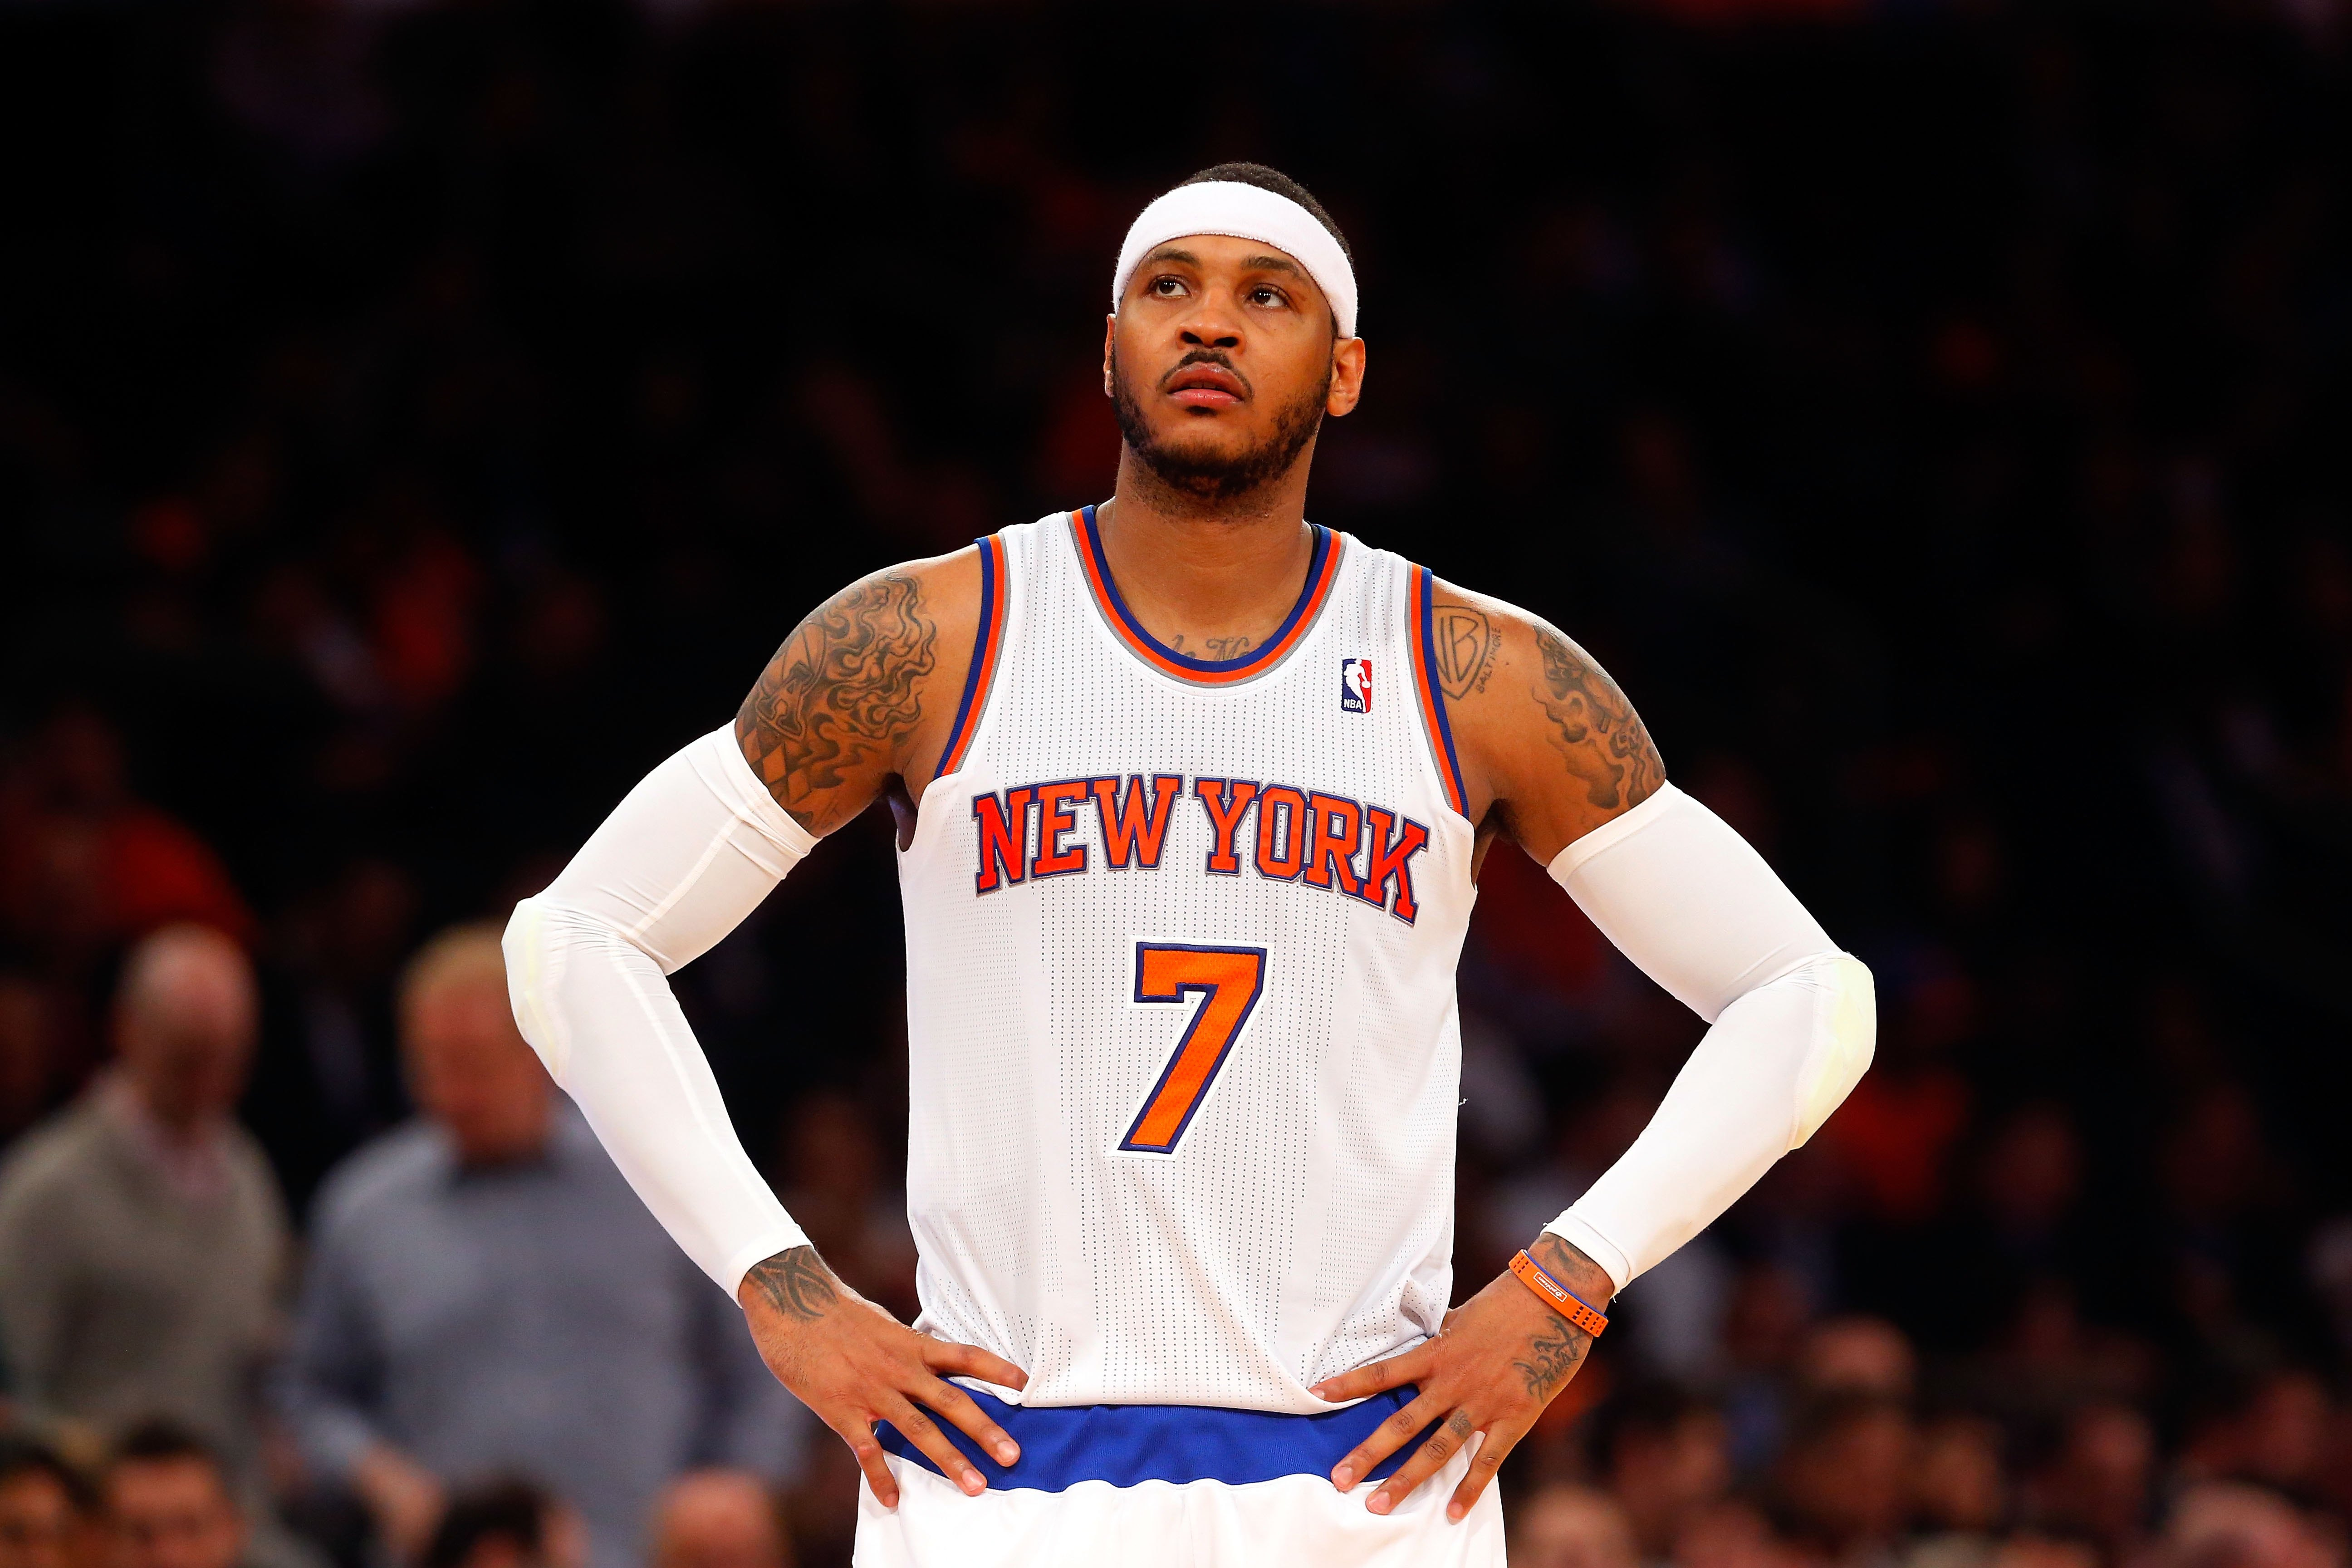 carmelo anthony says his shot will come back